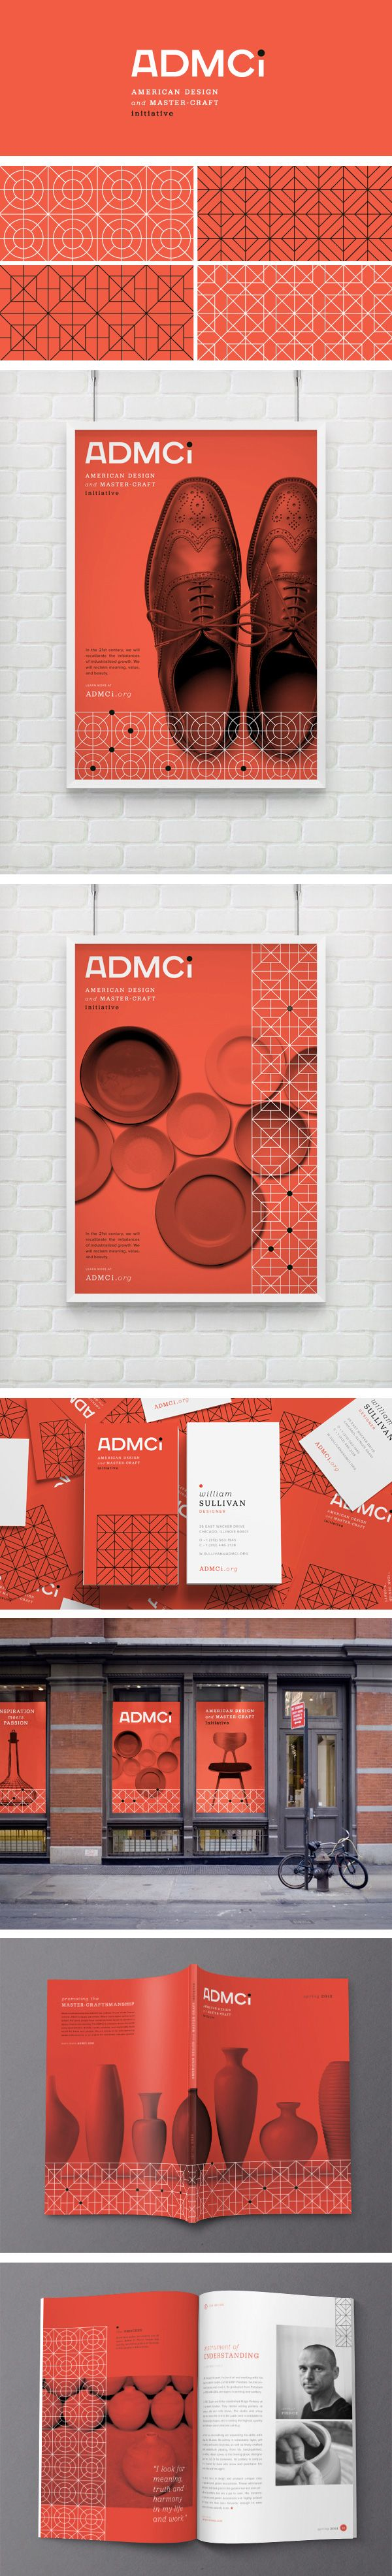 ADMCi Identity | Designer: Eight Hour Day #stationary #corporate #design #corporatedesign #identity #branding #identity #branding #marketing / #logo #design #graphic #branding #identity #brand #logotype #typography #creative